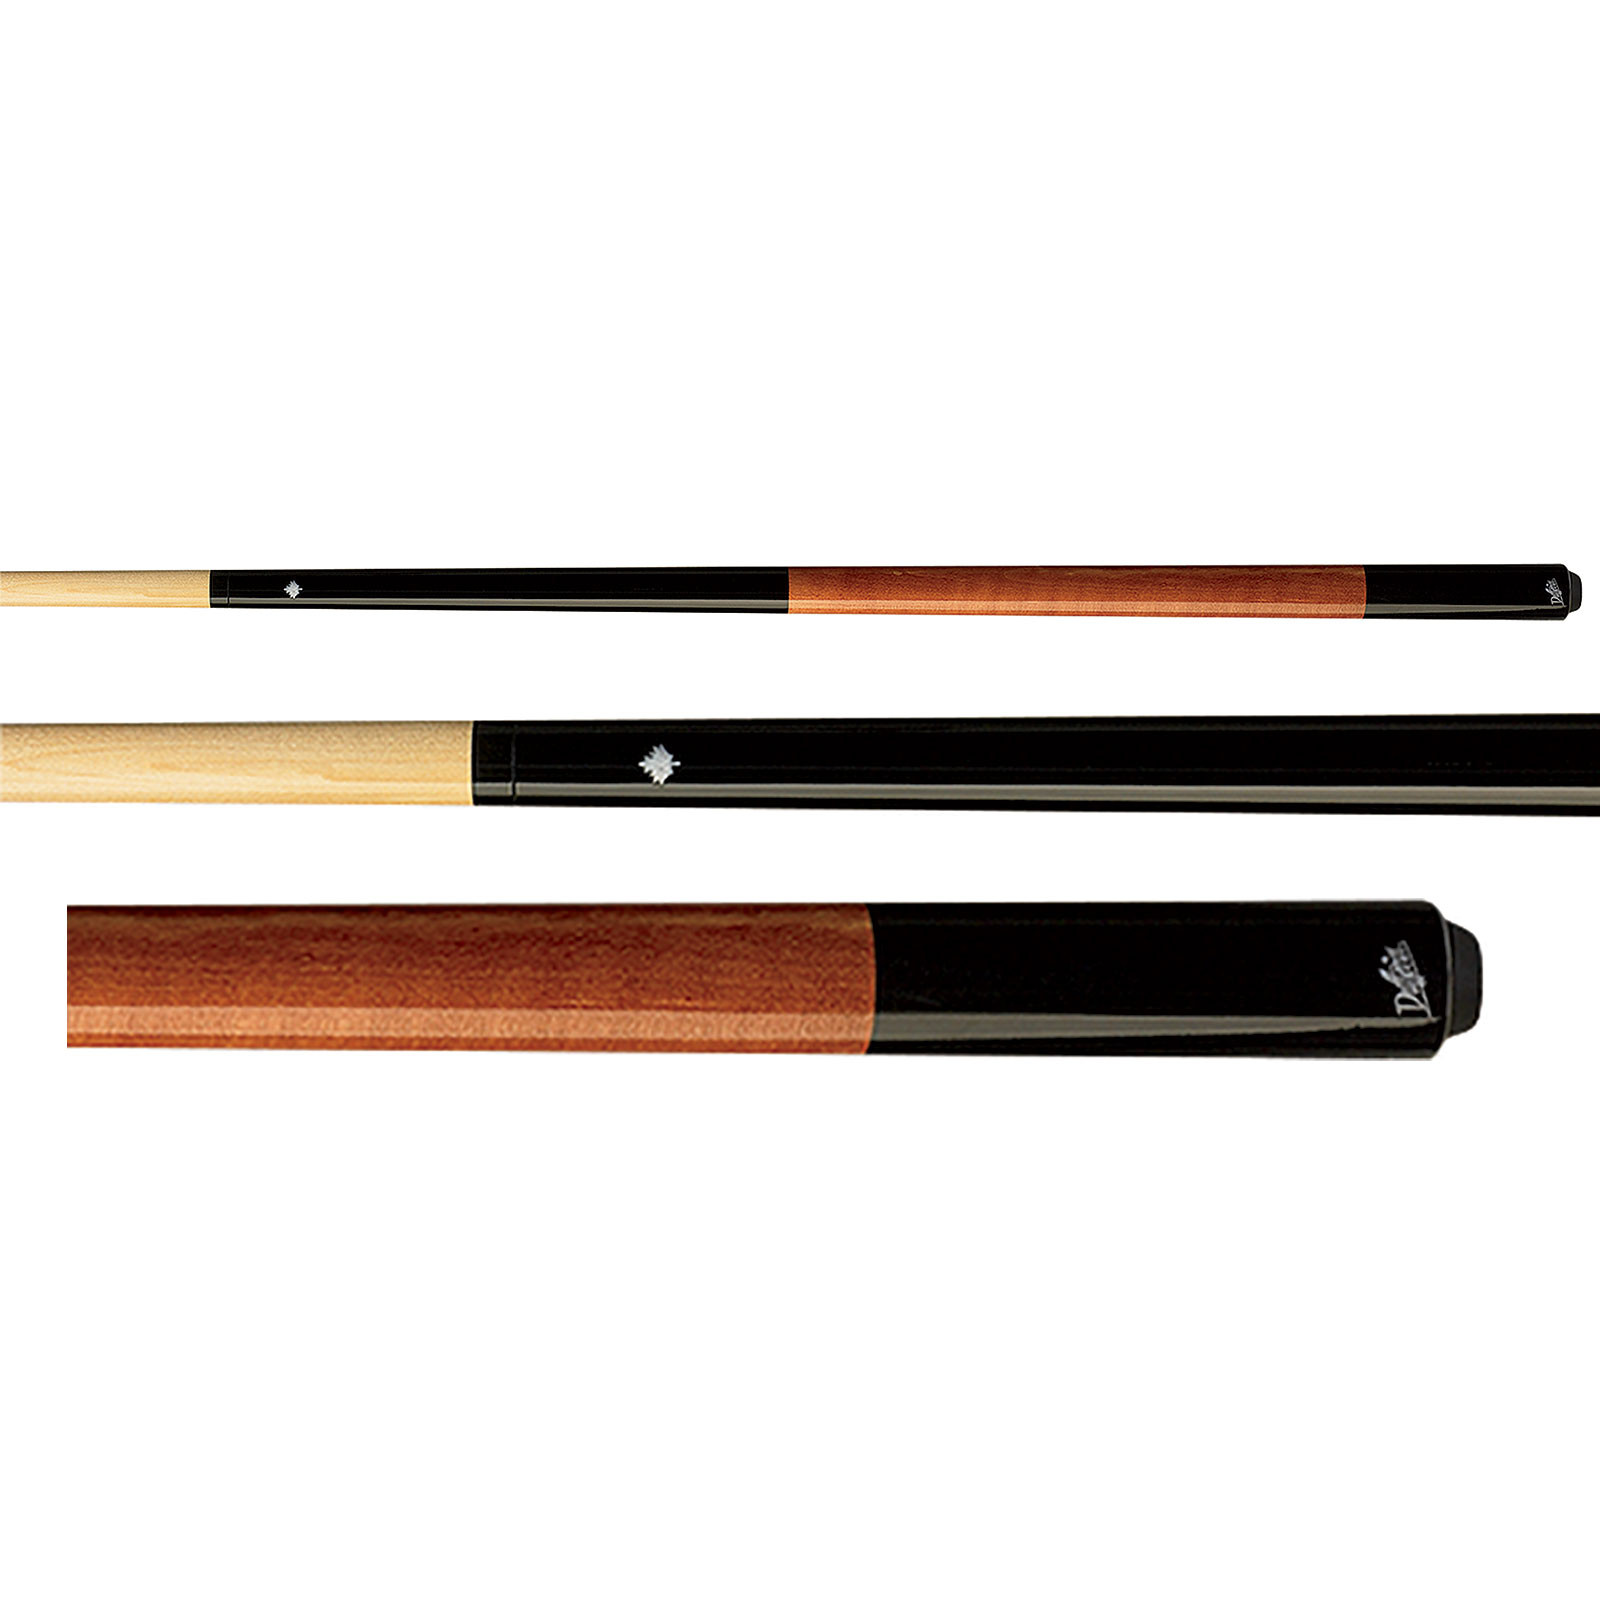 Dufferin D-233 Midnight Black Pool Cue Stick